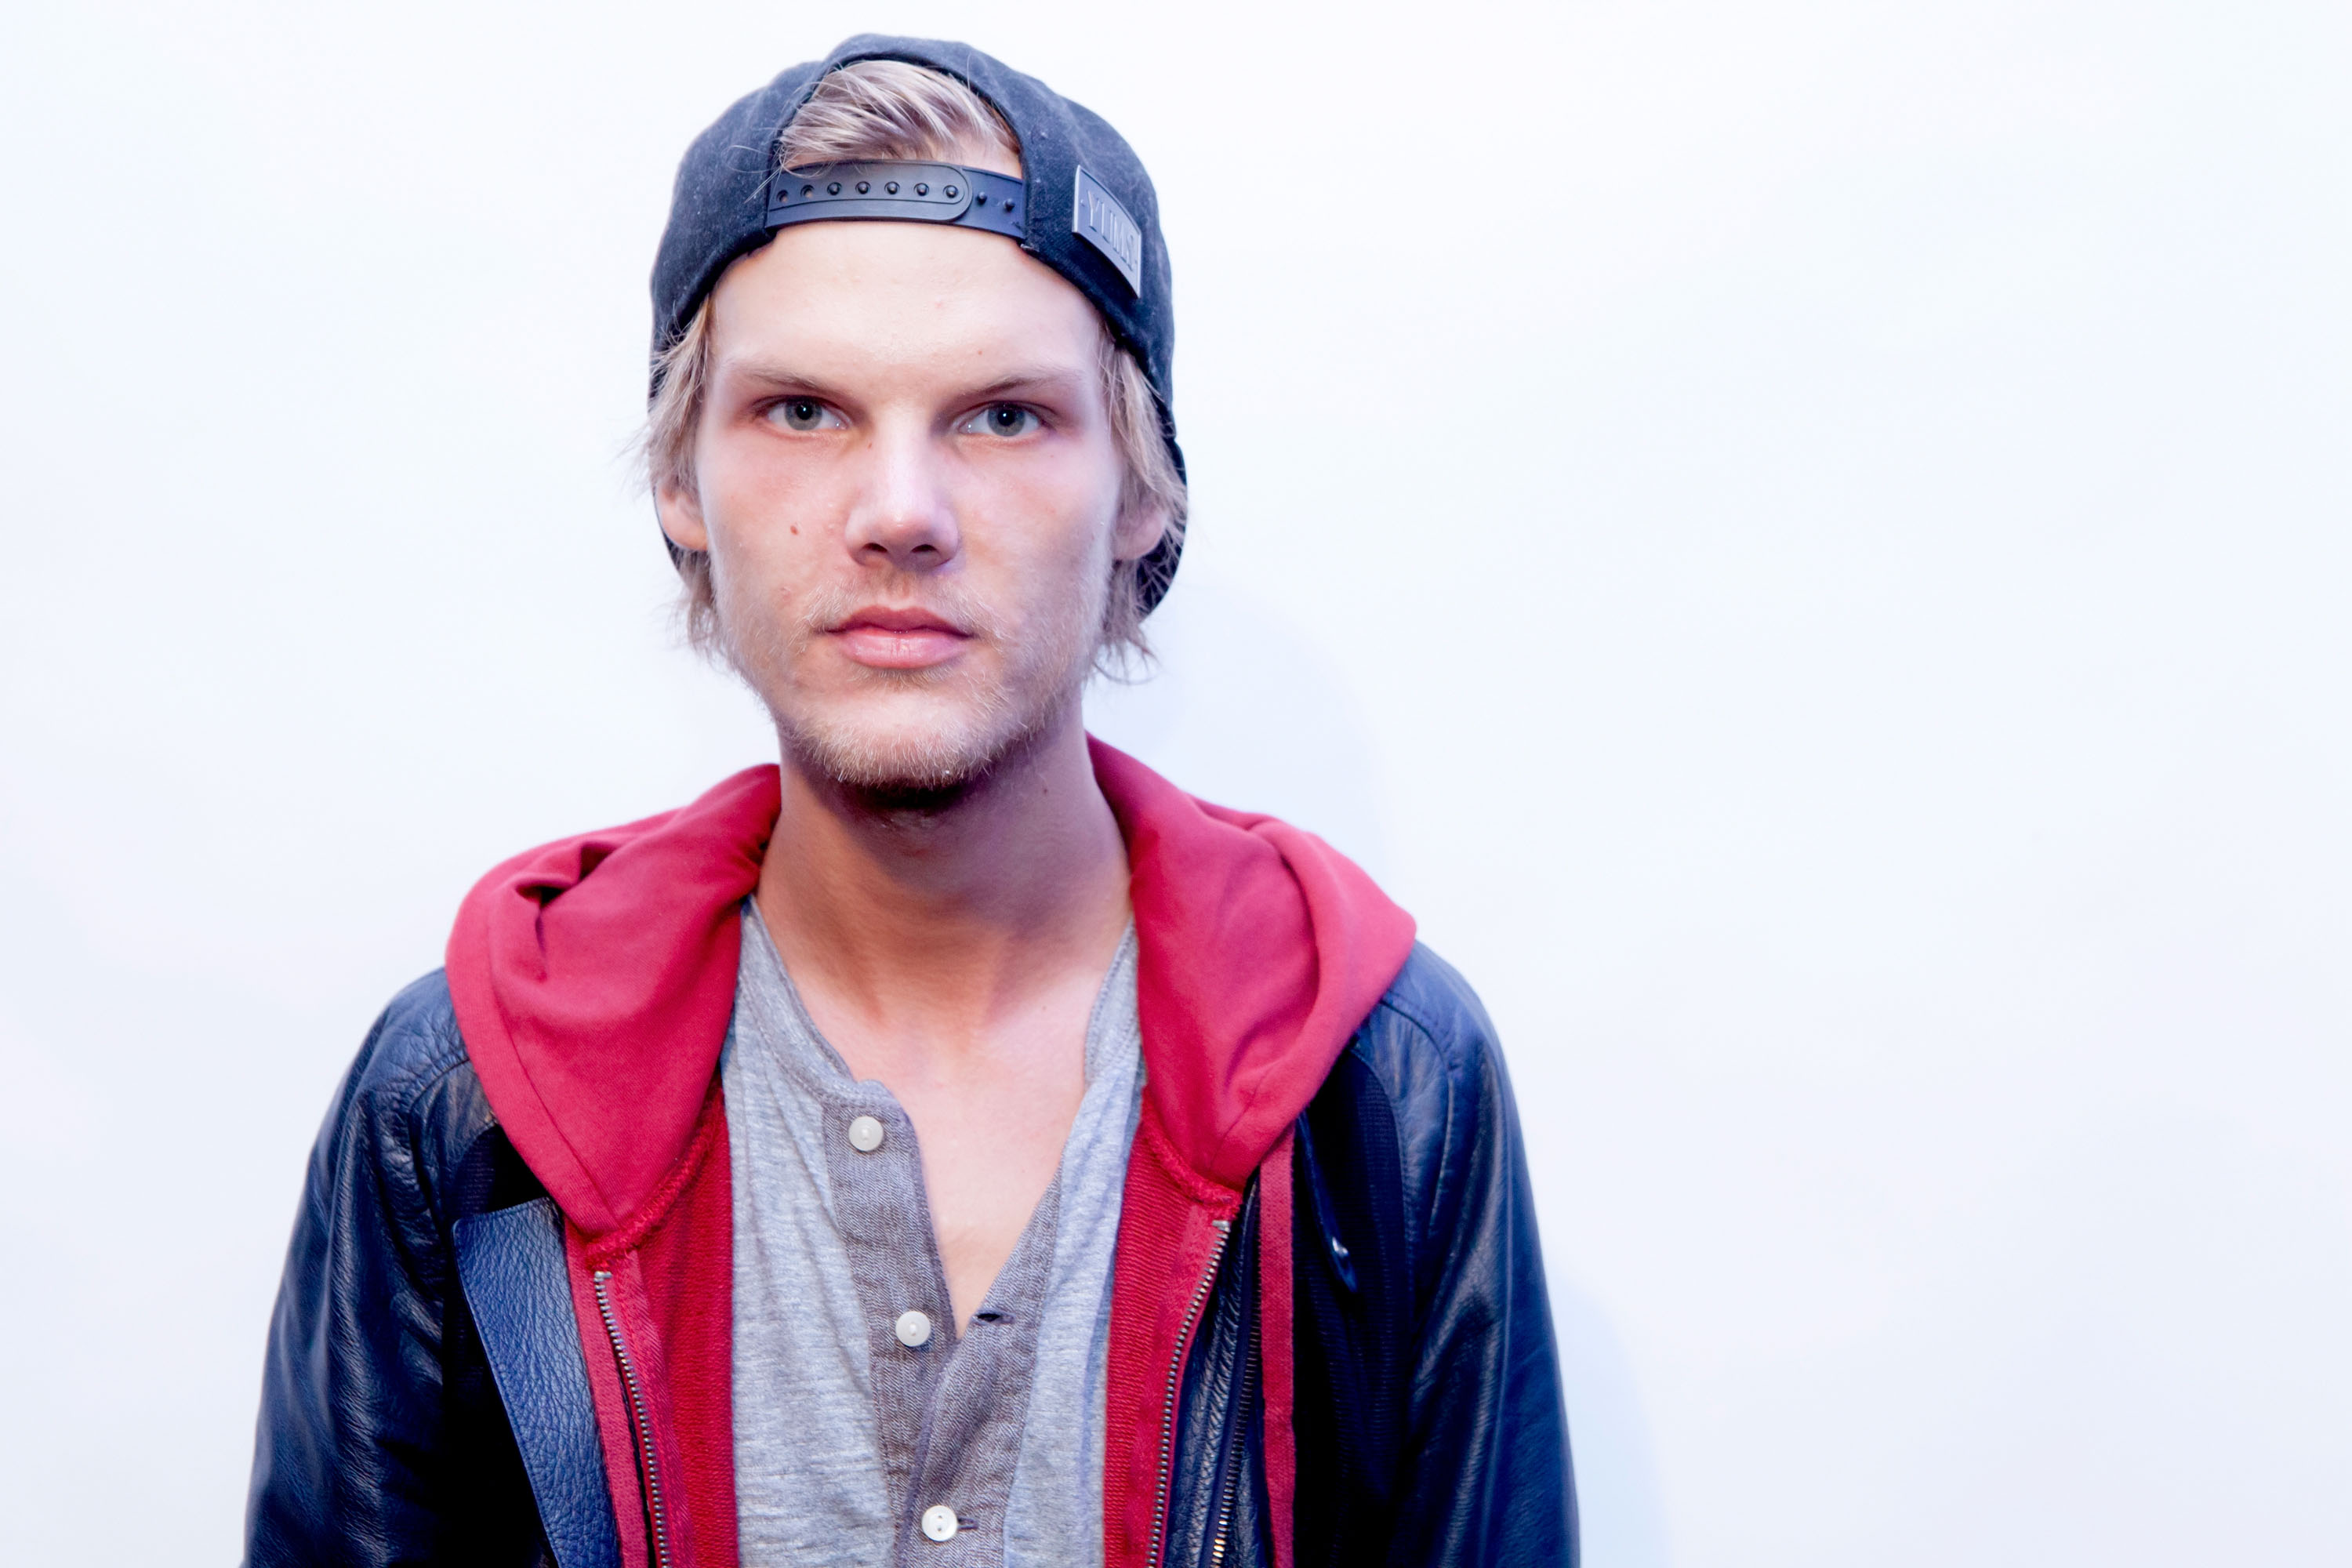 Swedish DJ Avicii died at 28 years old from suicide